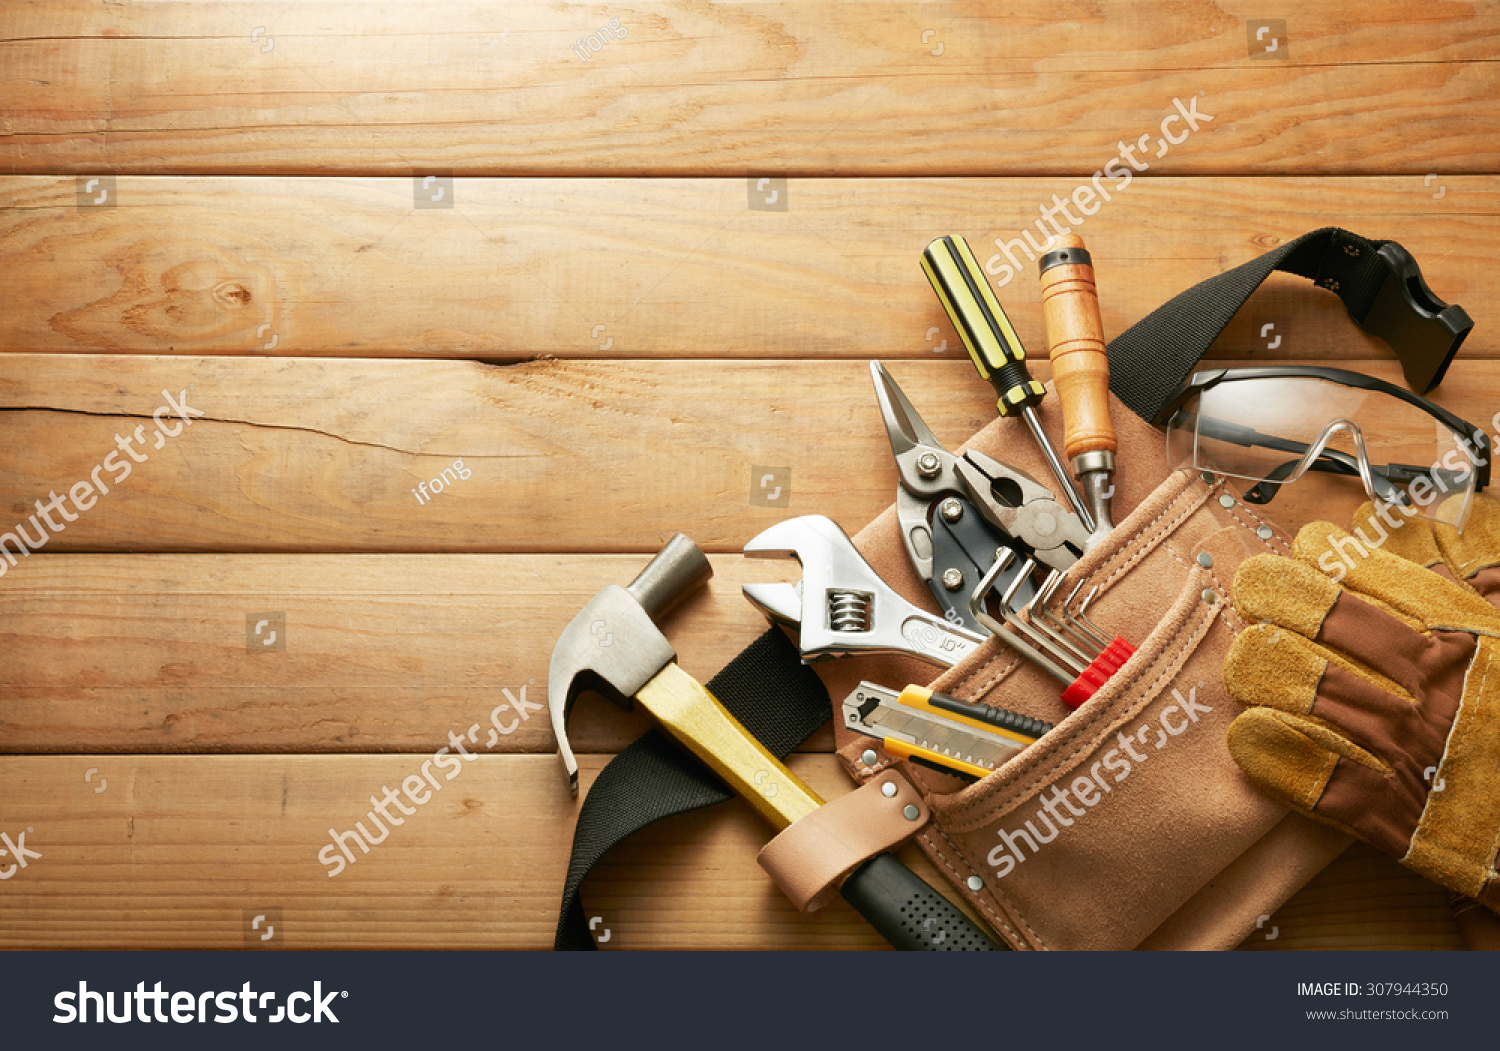 tools in tool belt on wood planks with copy space #307944350